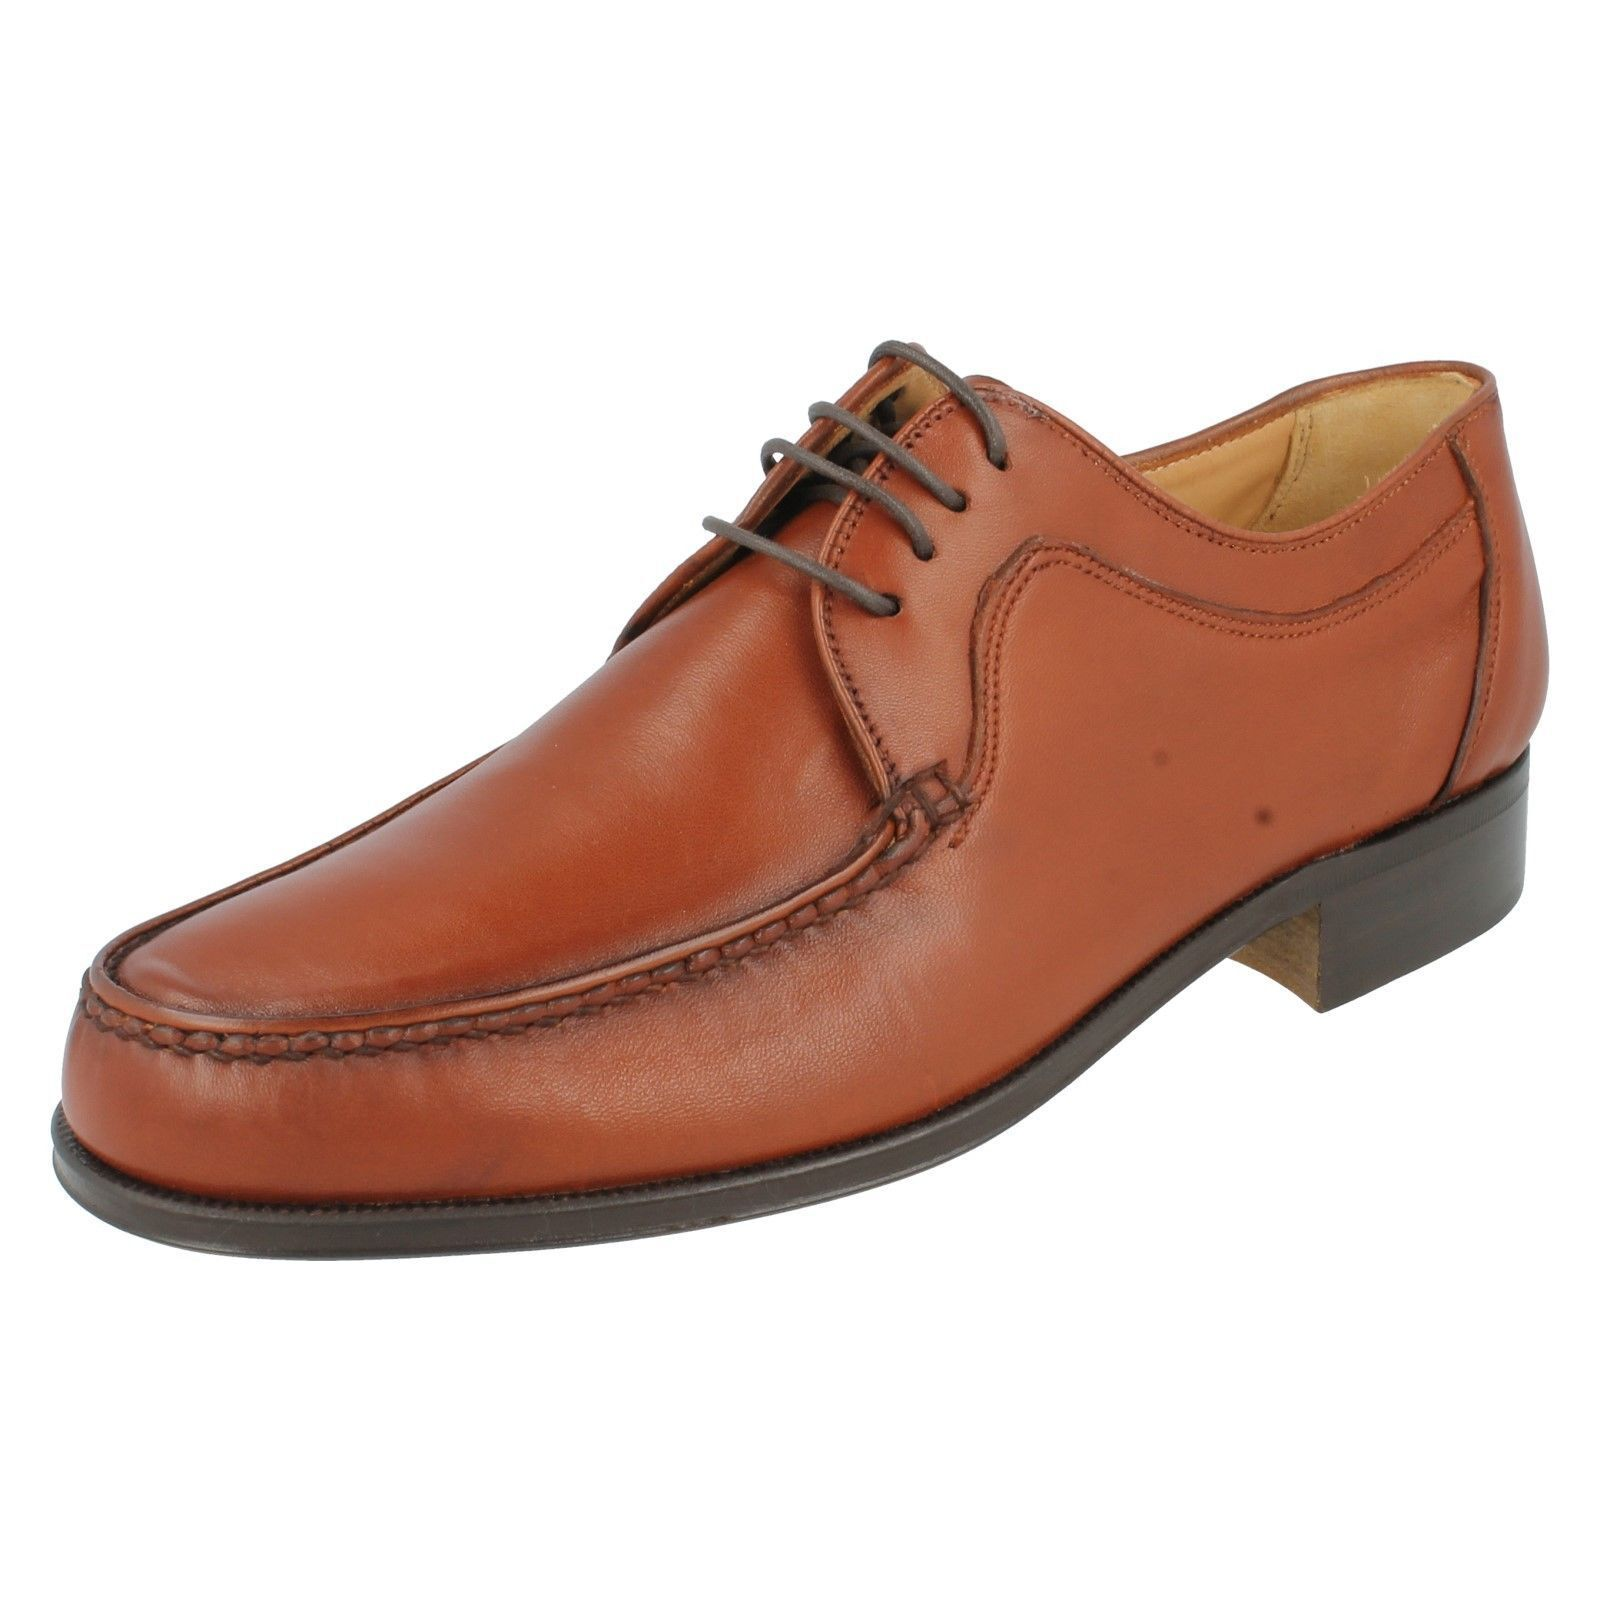 Hommes Grenson Cognac Leather Mocassins - Evan